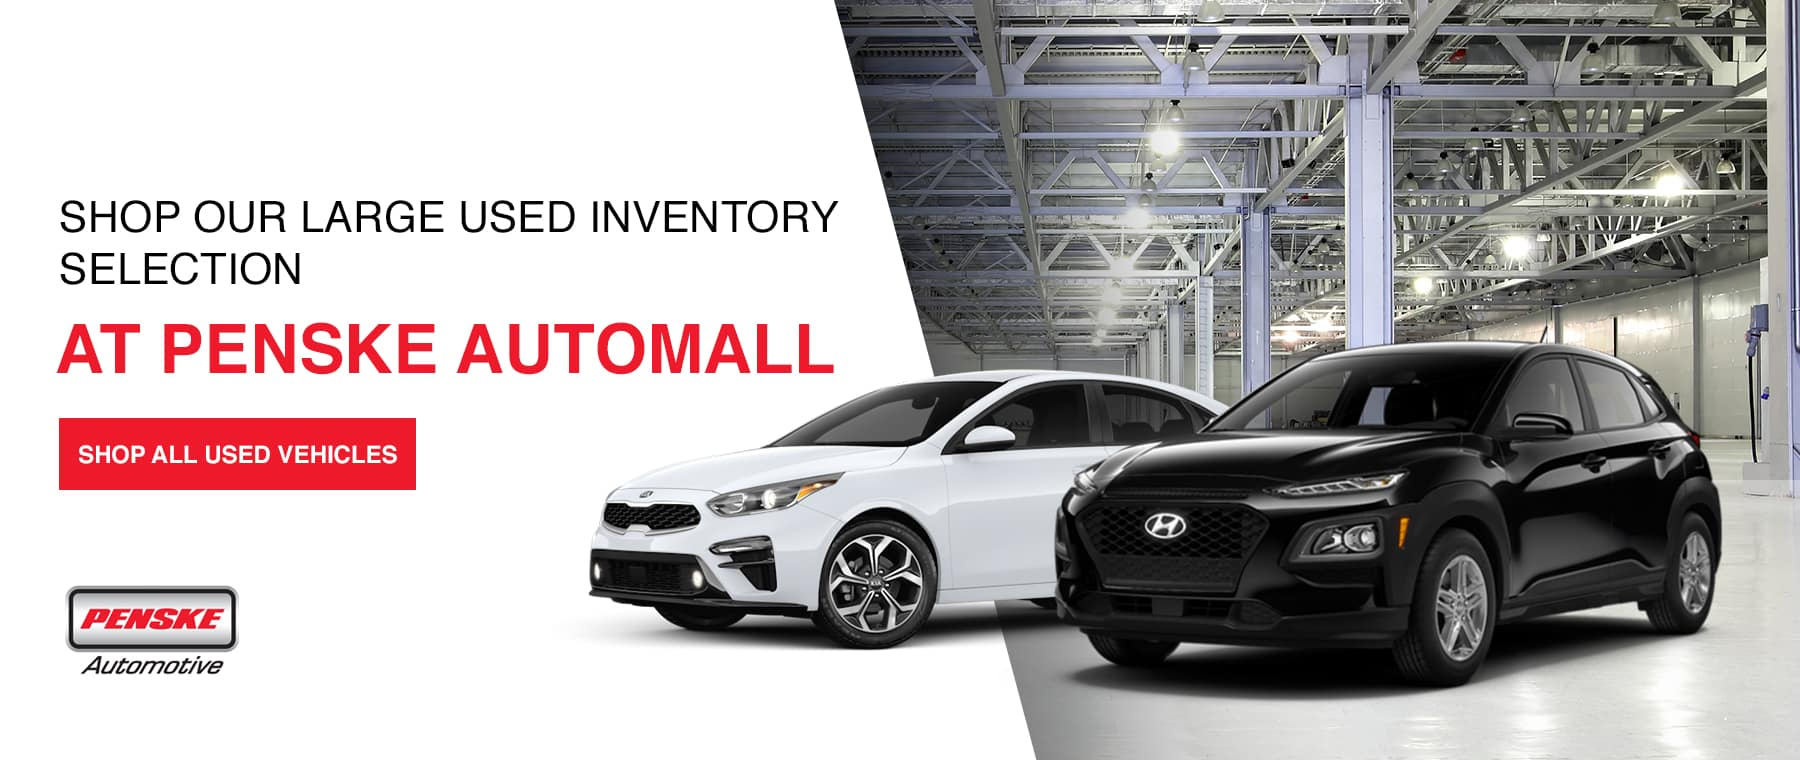 SHOP OUR LARGE USED INVENTORY SELECTION